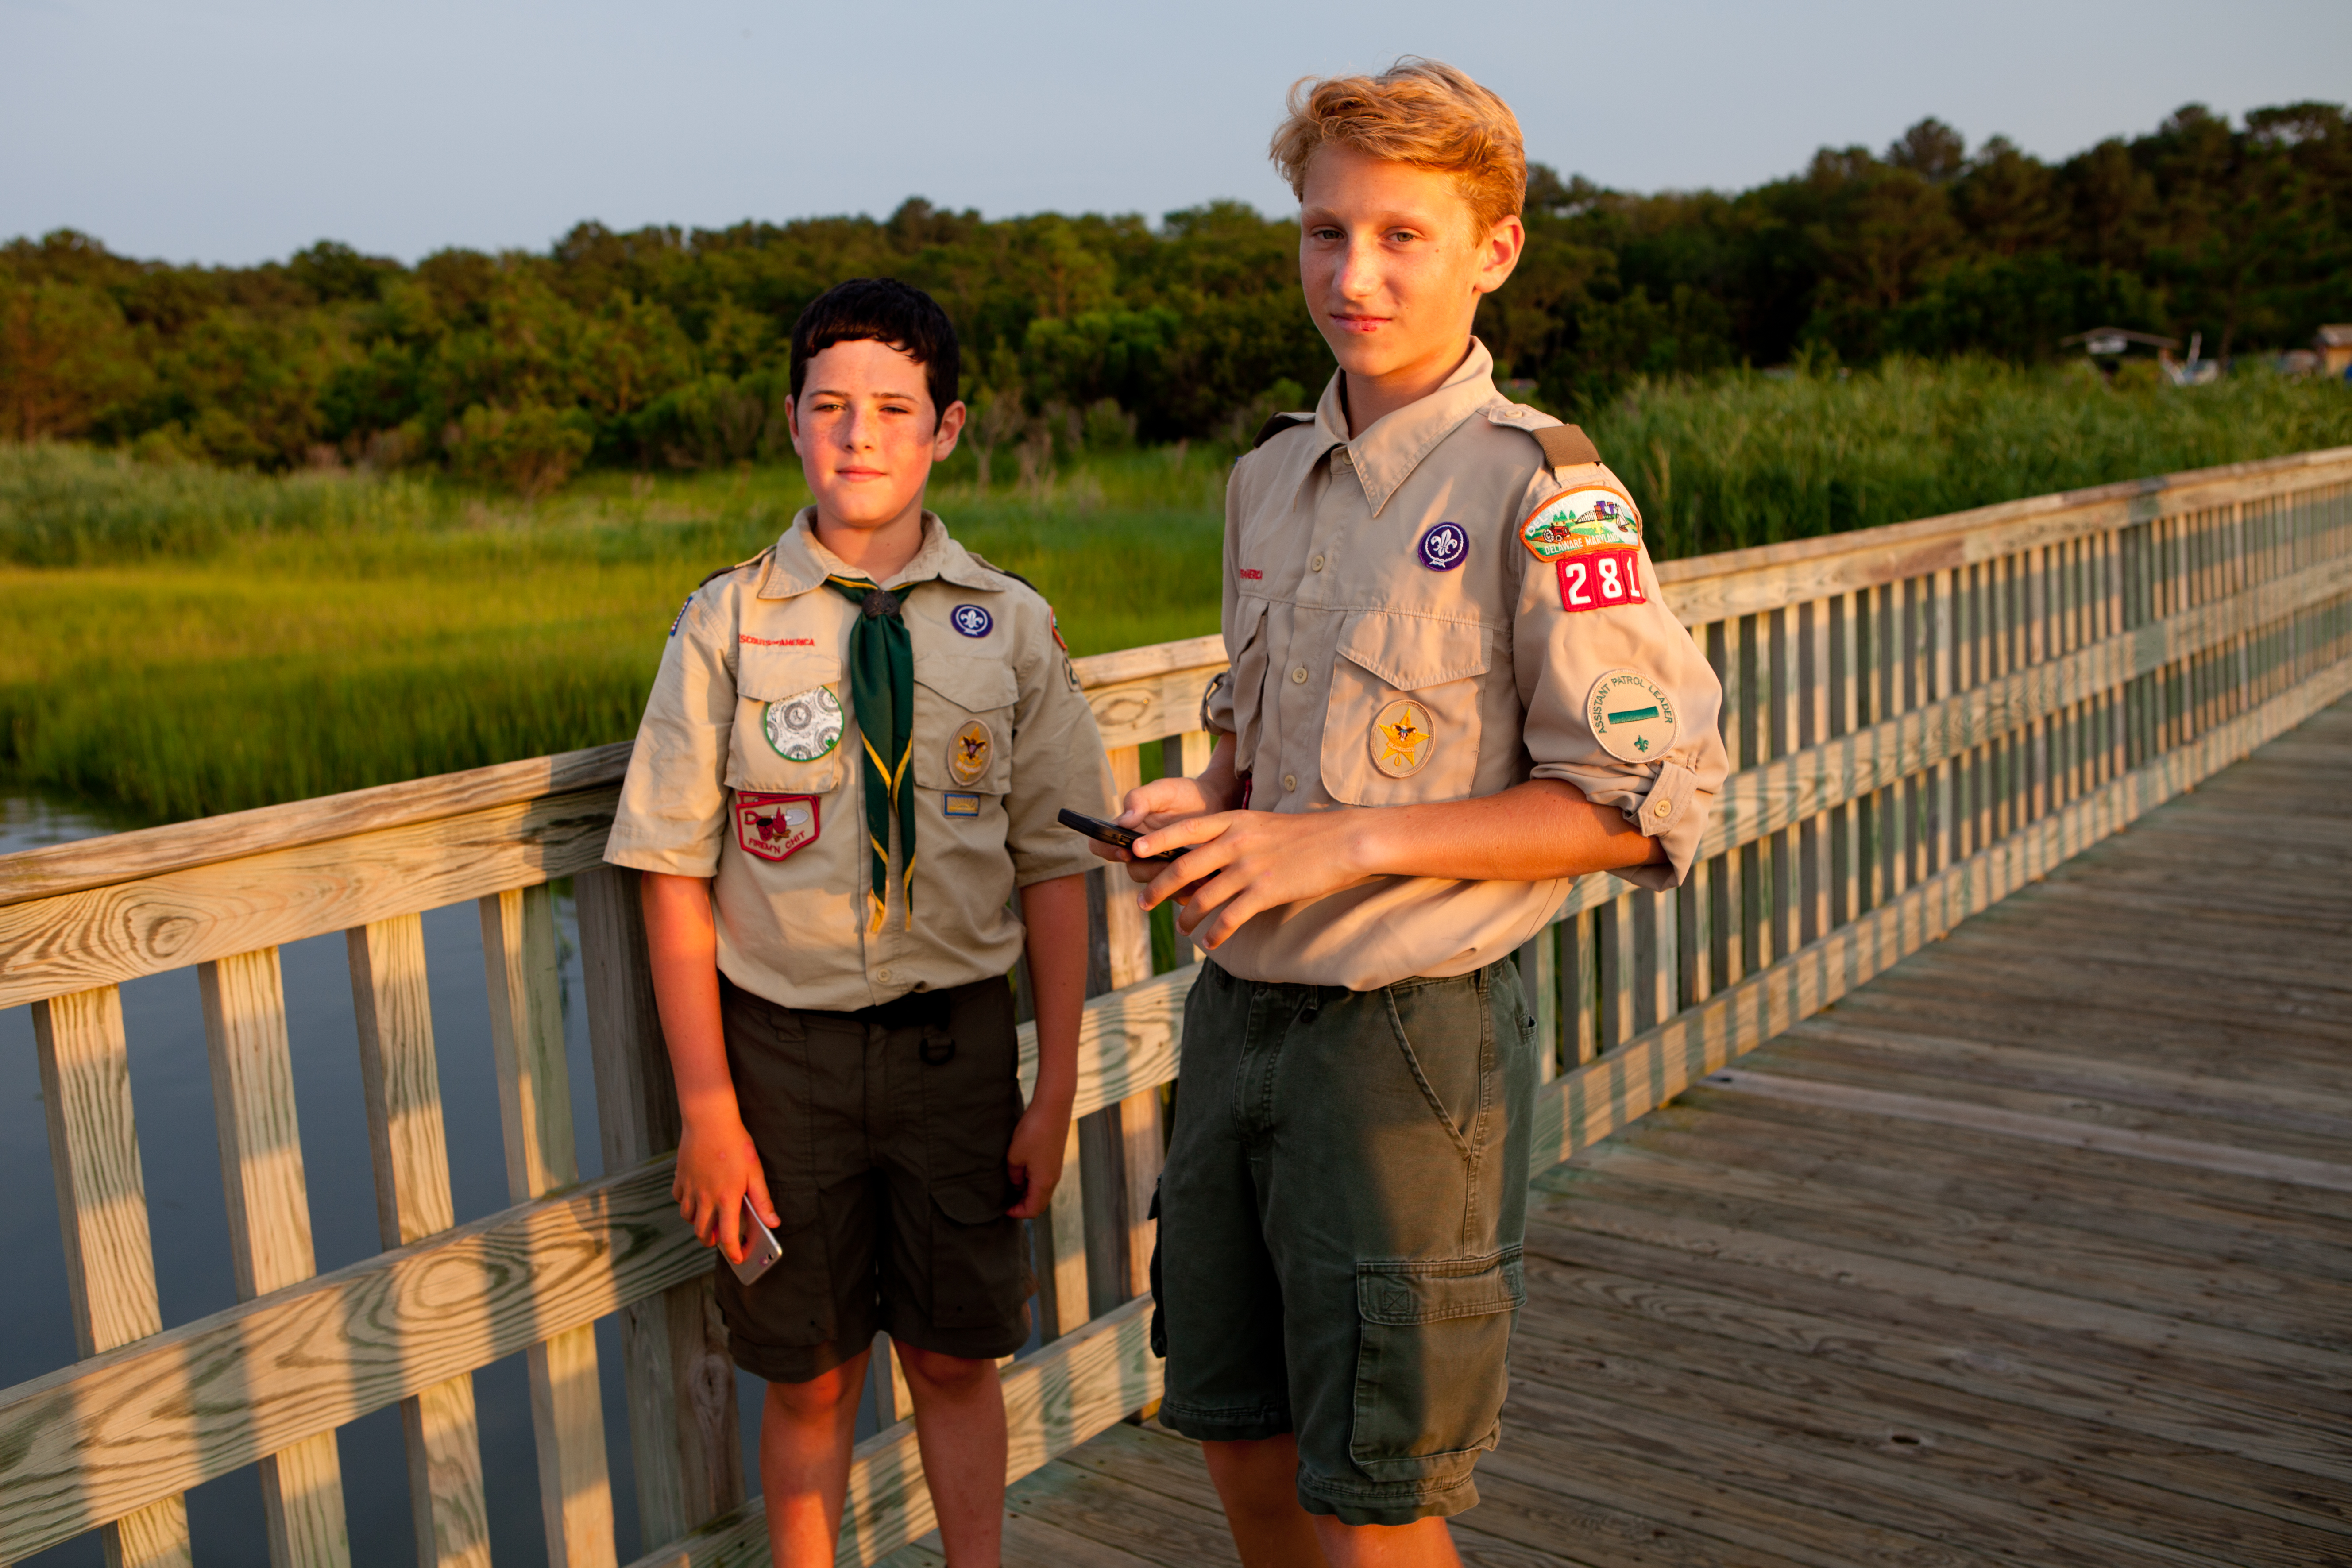 two boy scouts on a wooden bridge